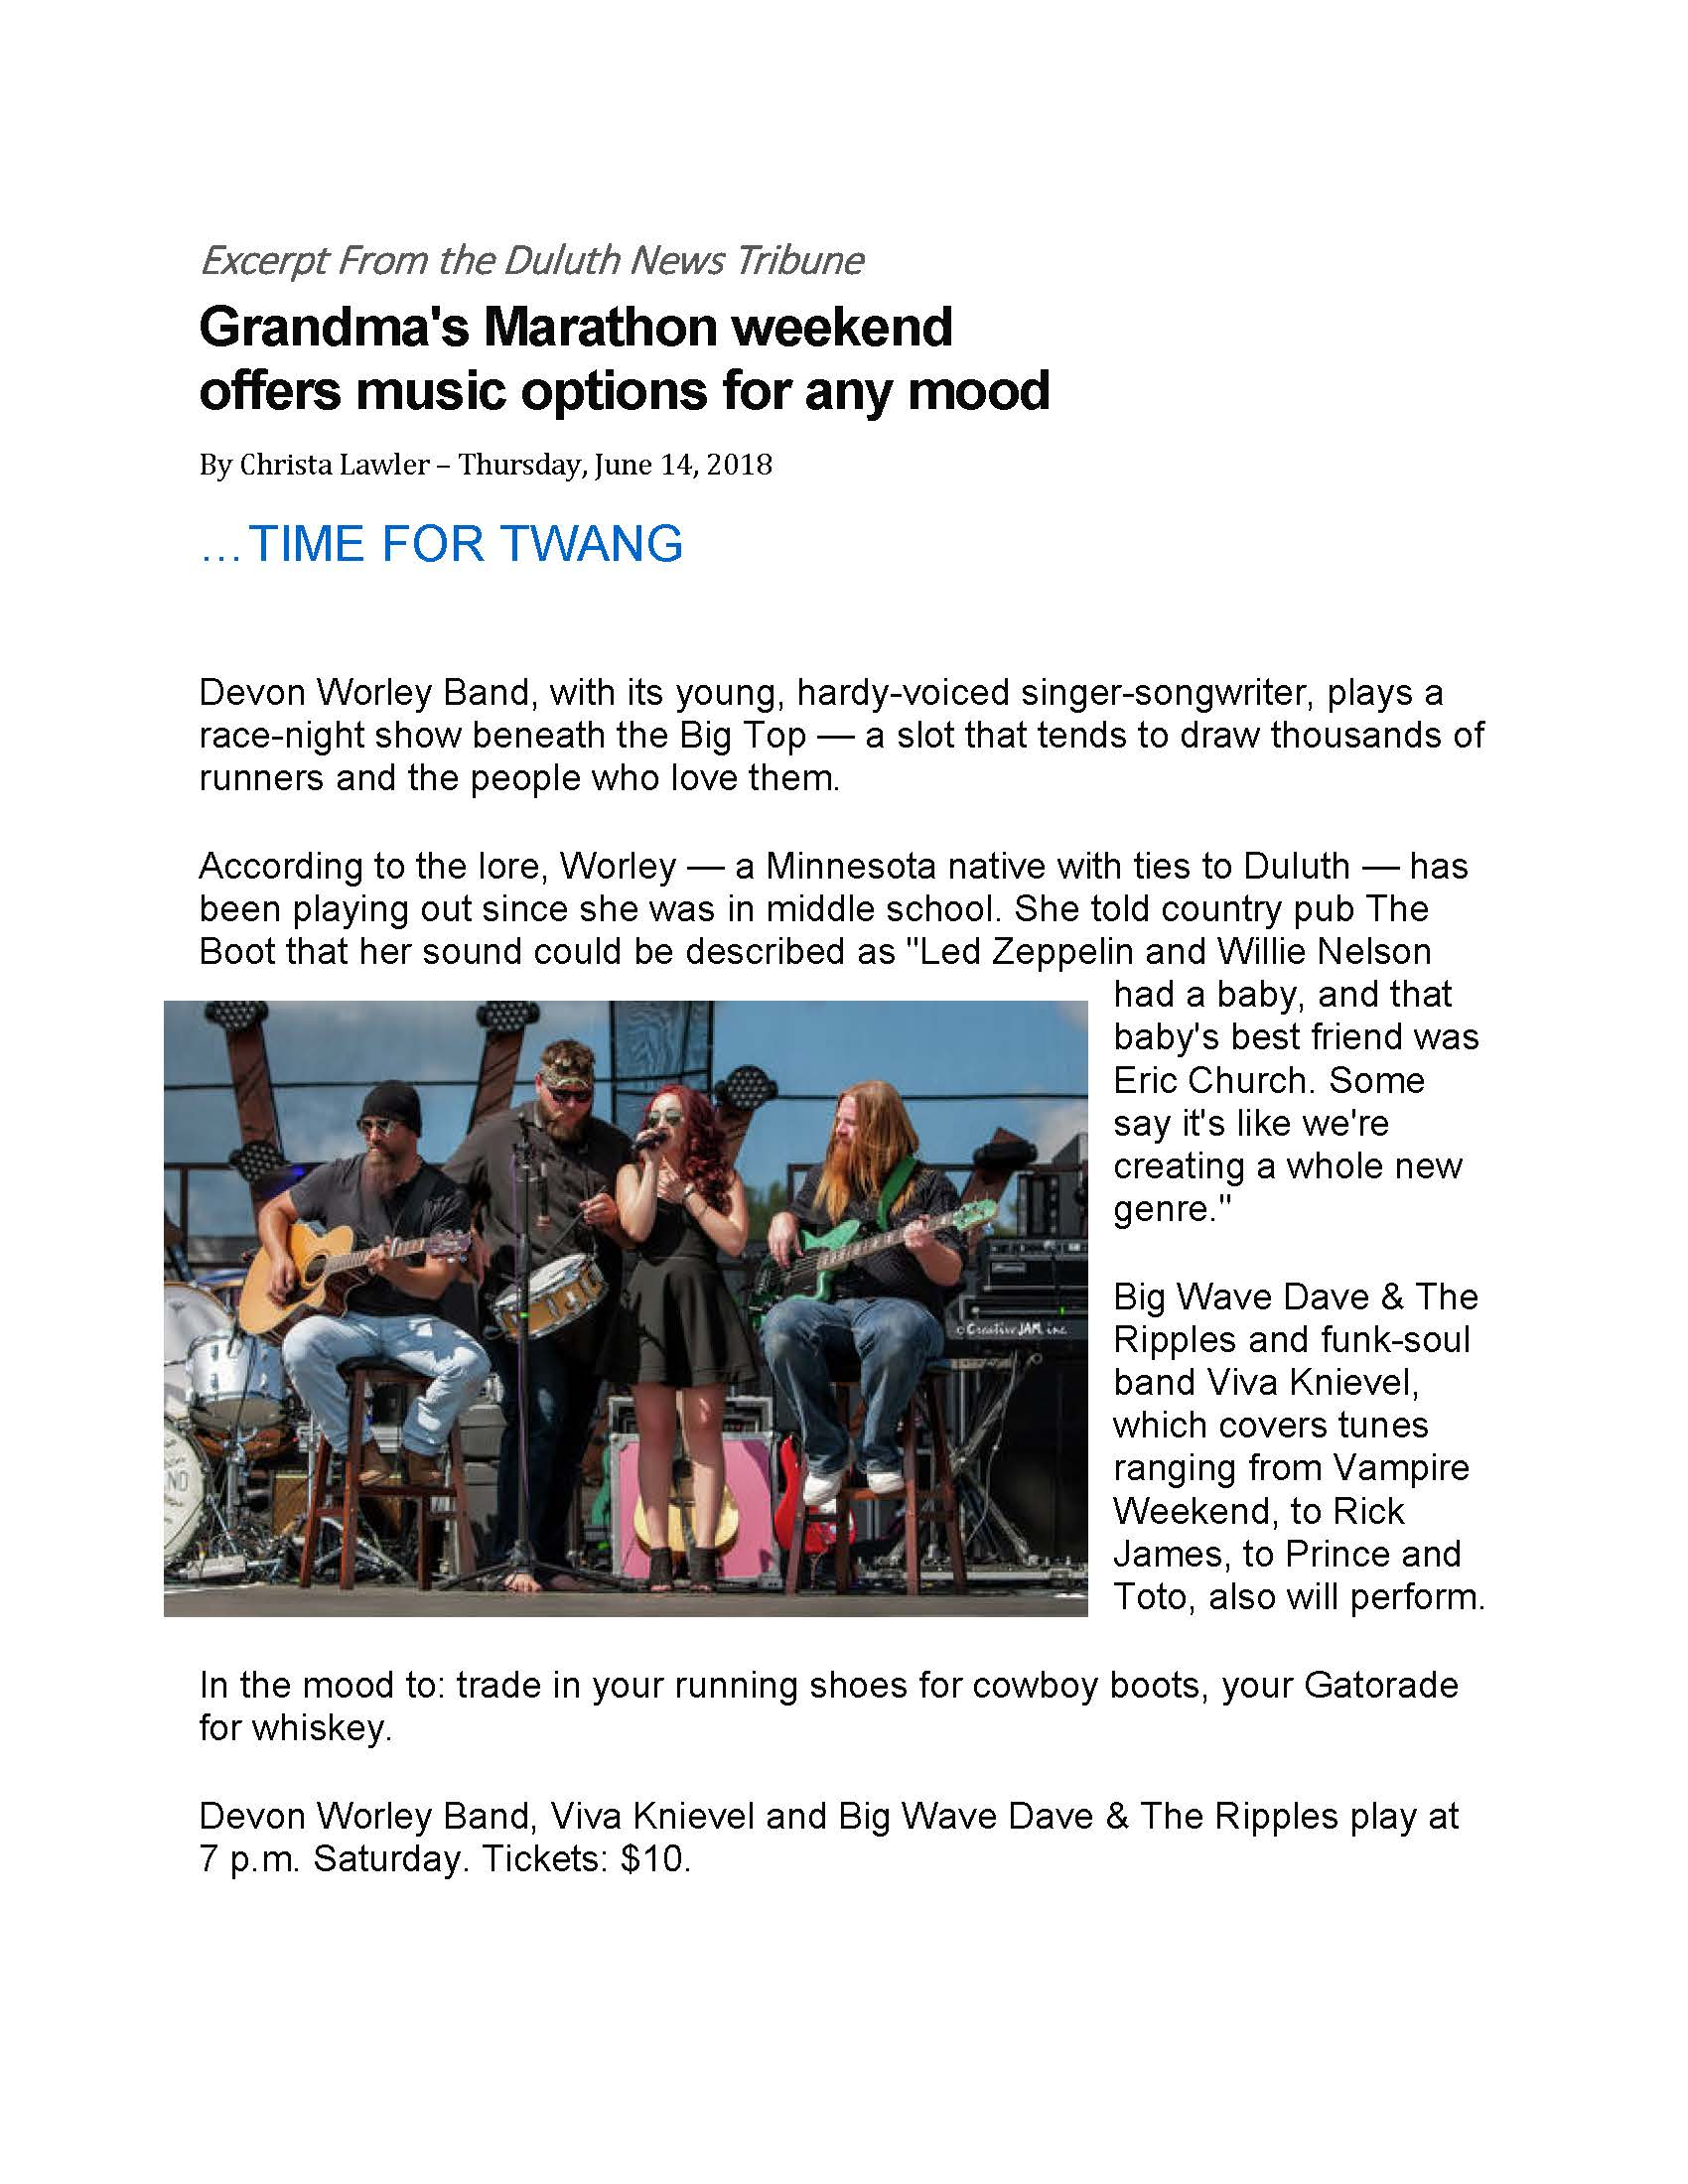 Duluth News Tribune article about Grandma's Marathon Entertainment